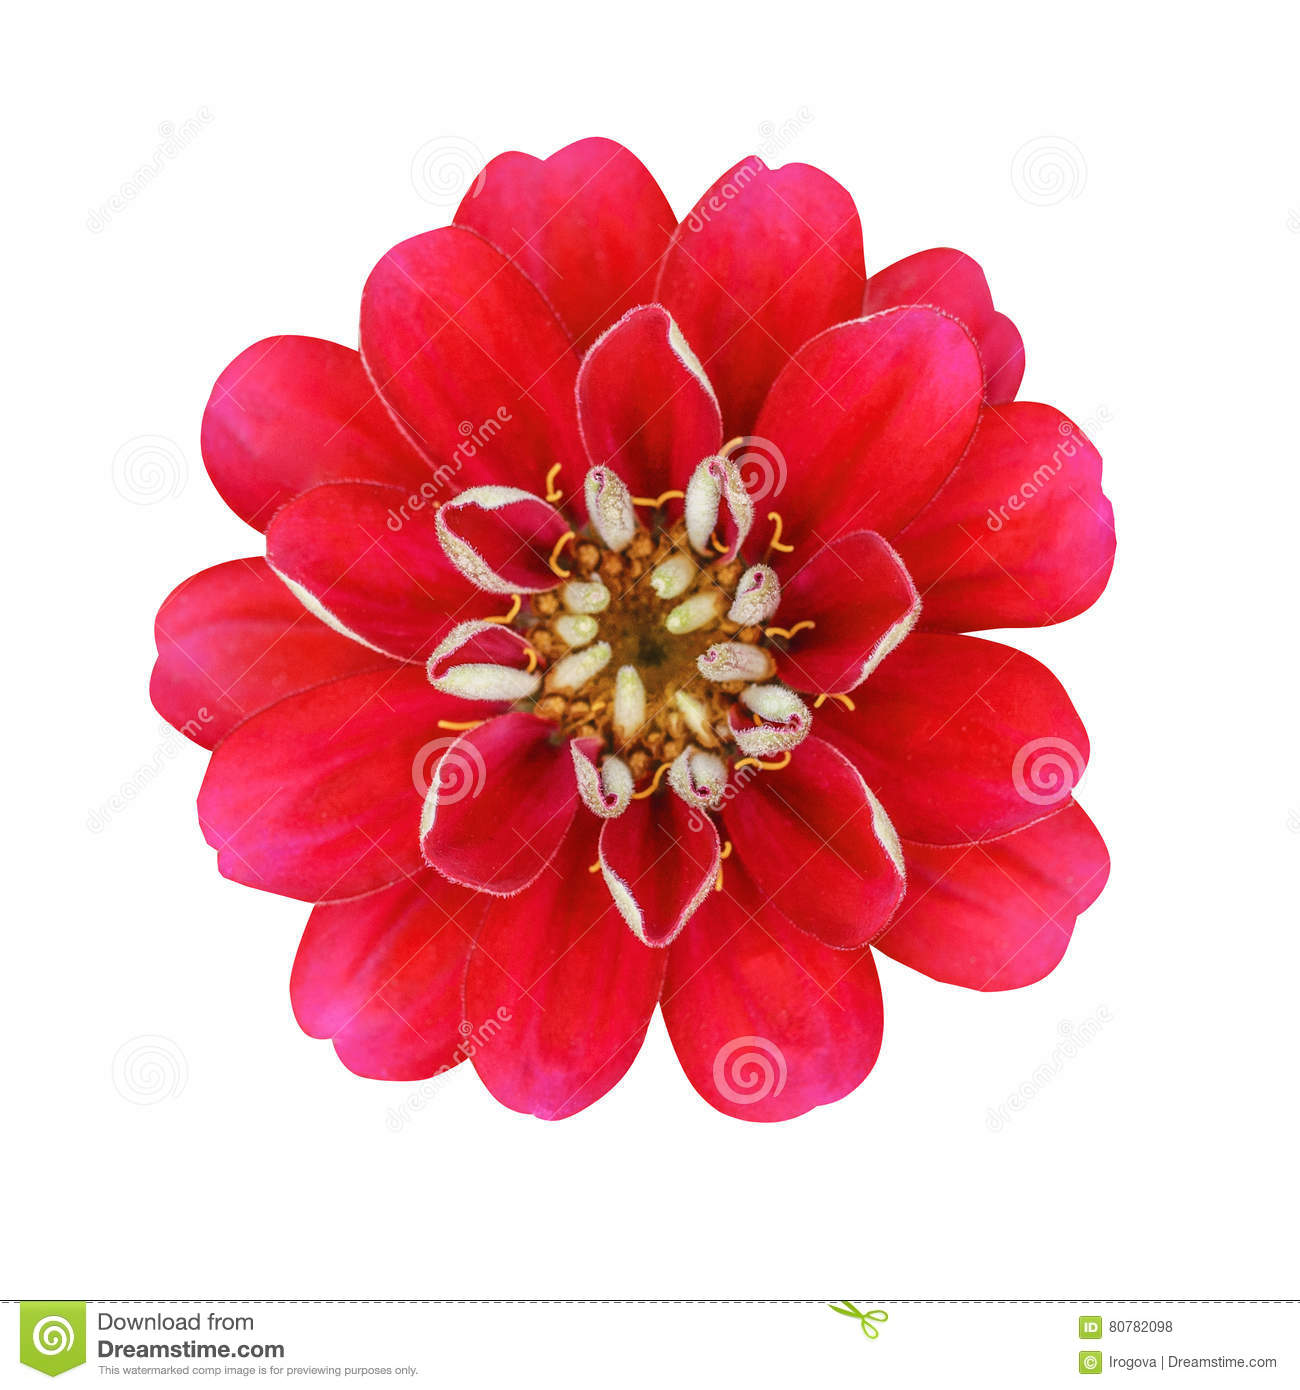 The red flower with yellow stamens stock photo image of fragrant download the red flower with yellow stamens stock photo image of fragrant elegant mightylinksfo